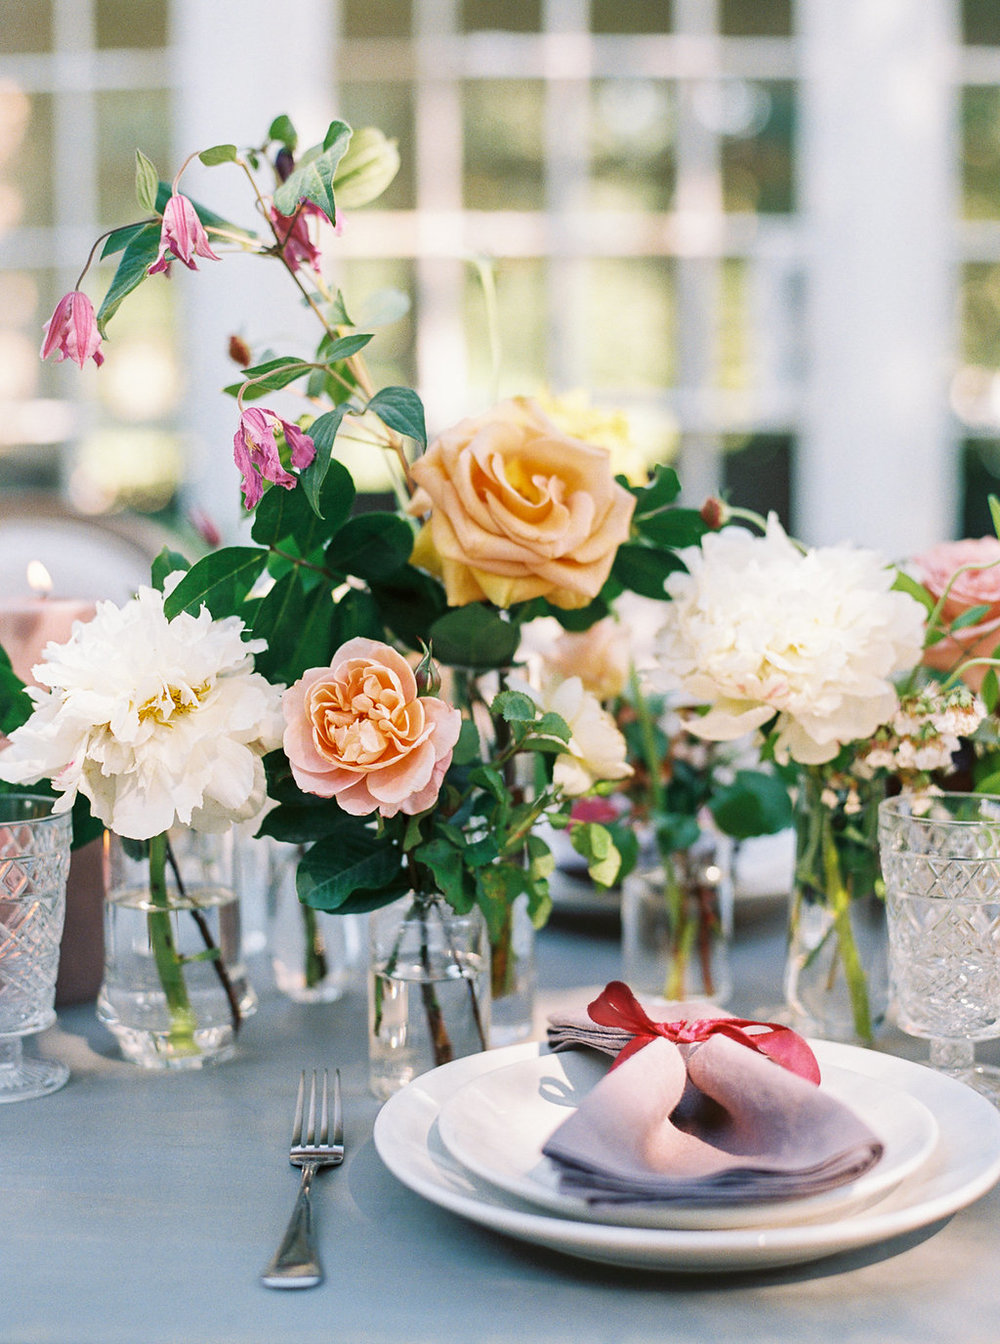 bud vases floral tablescape wedding reception | follow us on instagram: @ thewildflowers_com